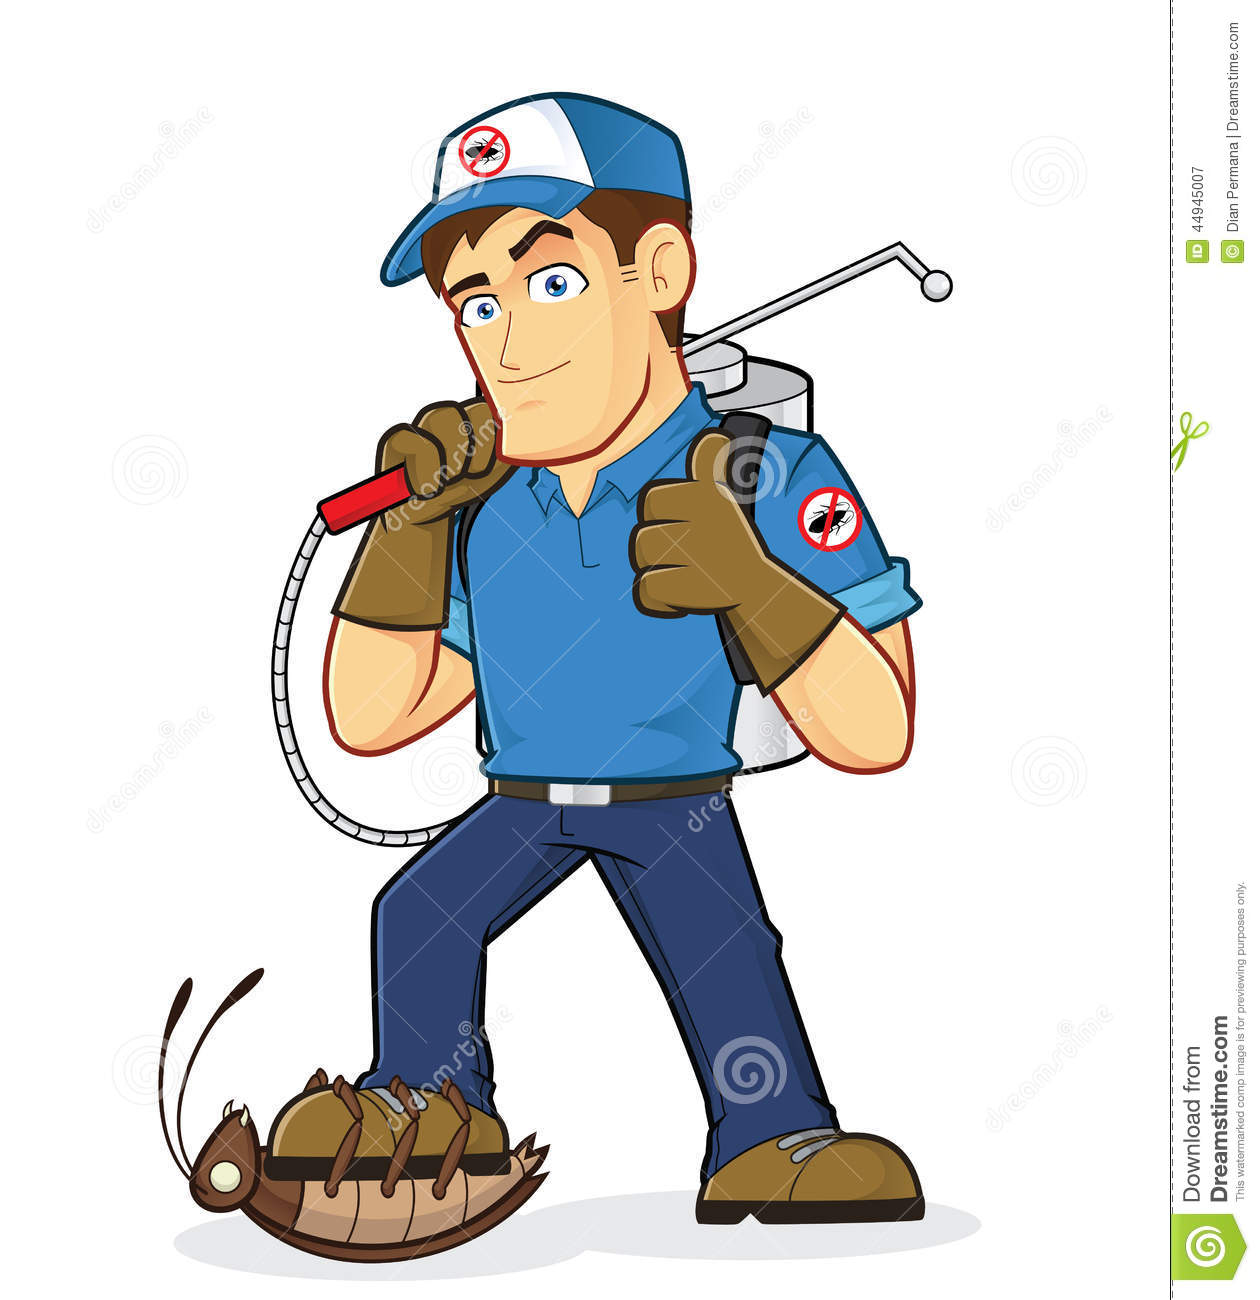 Royalty Free Stock Photography  Exterminator Or Pest Control  Image